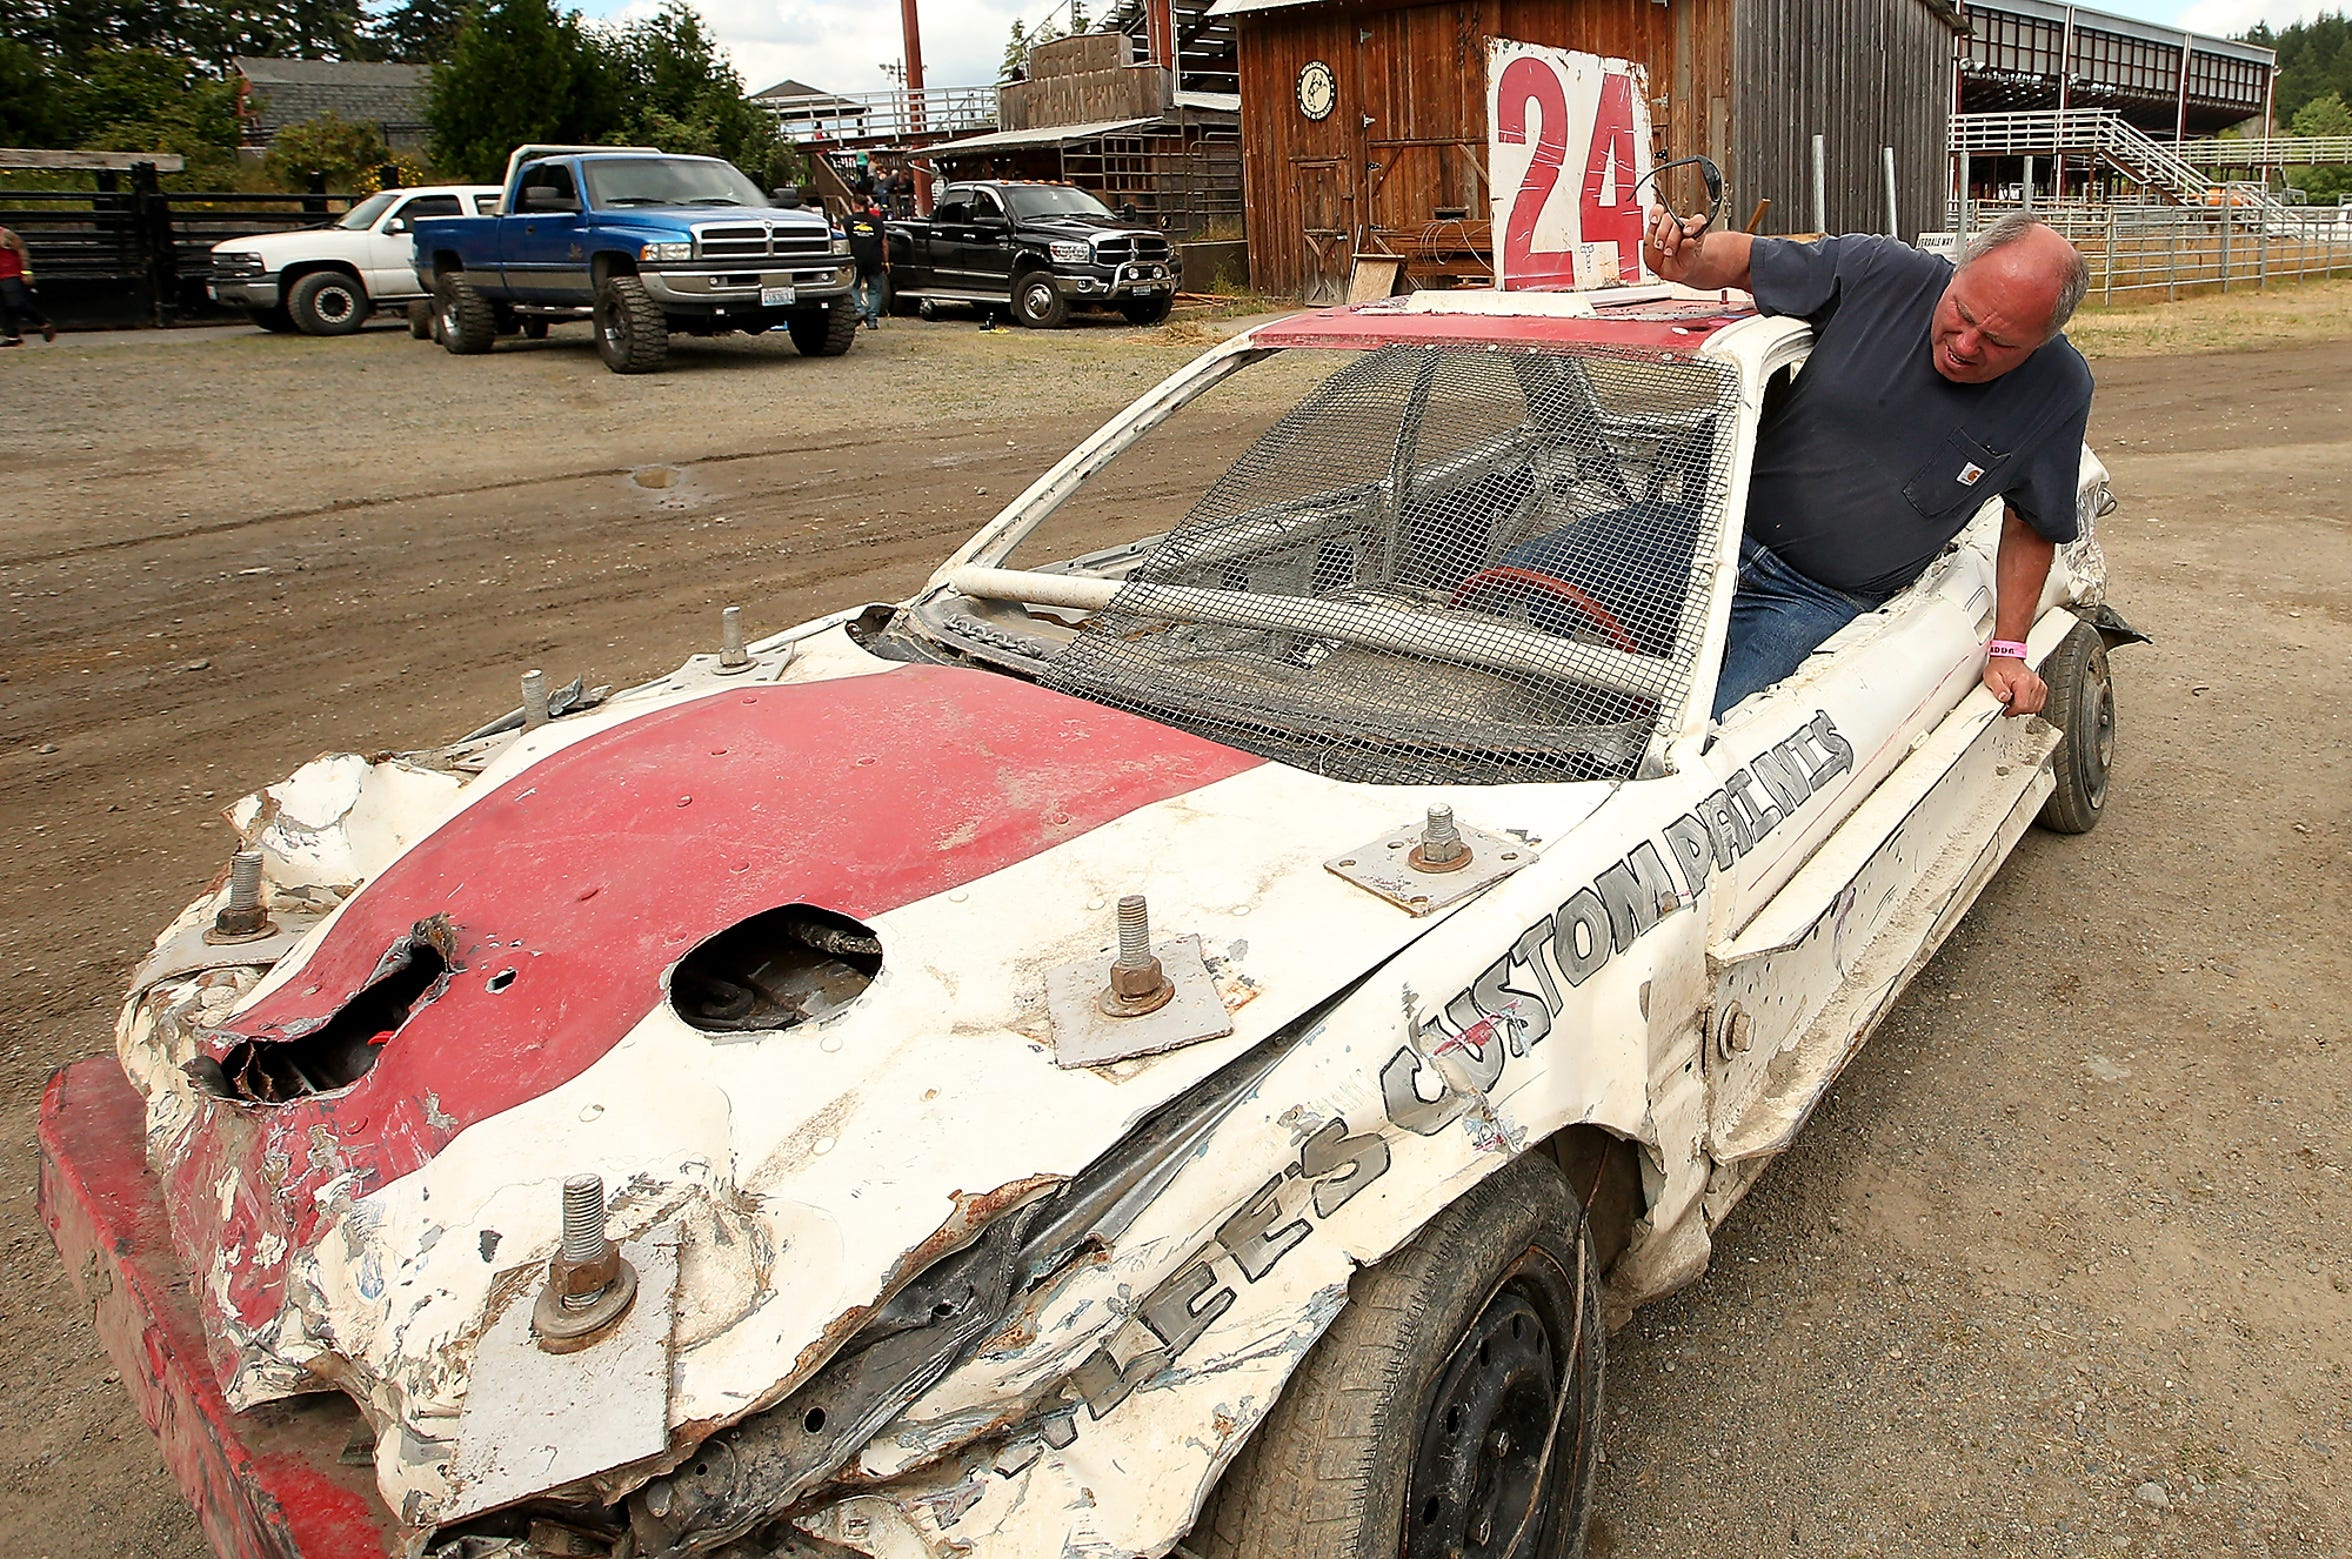 Kitsap Destruction Derby is a smashing good time for drivers